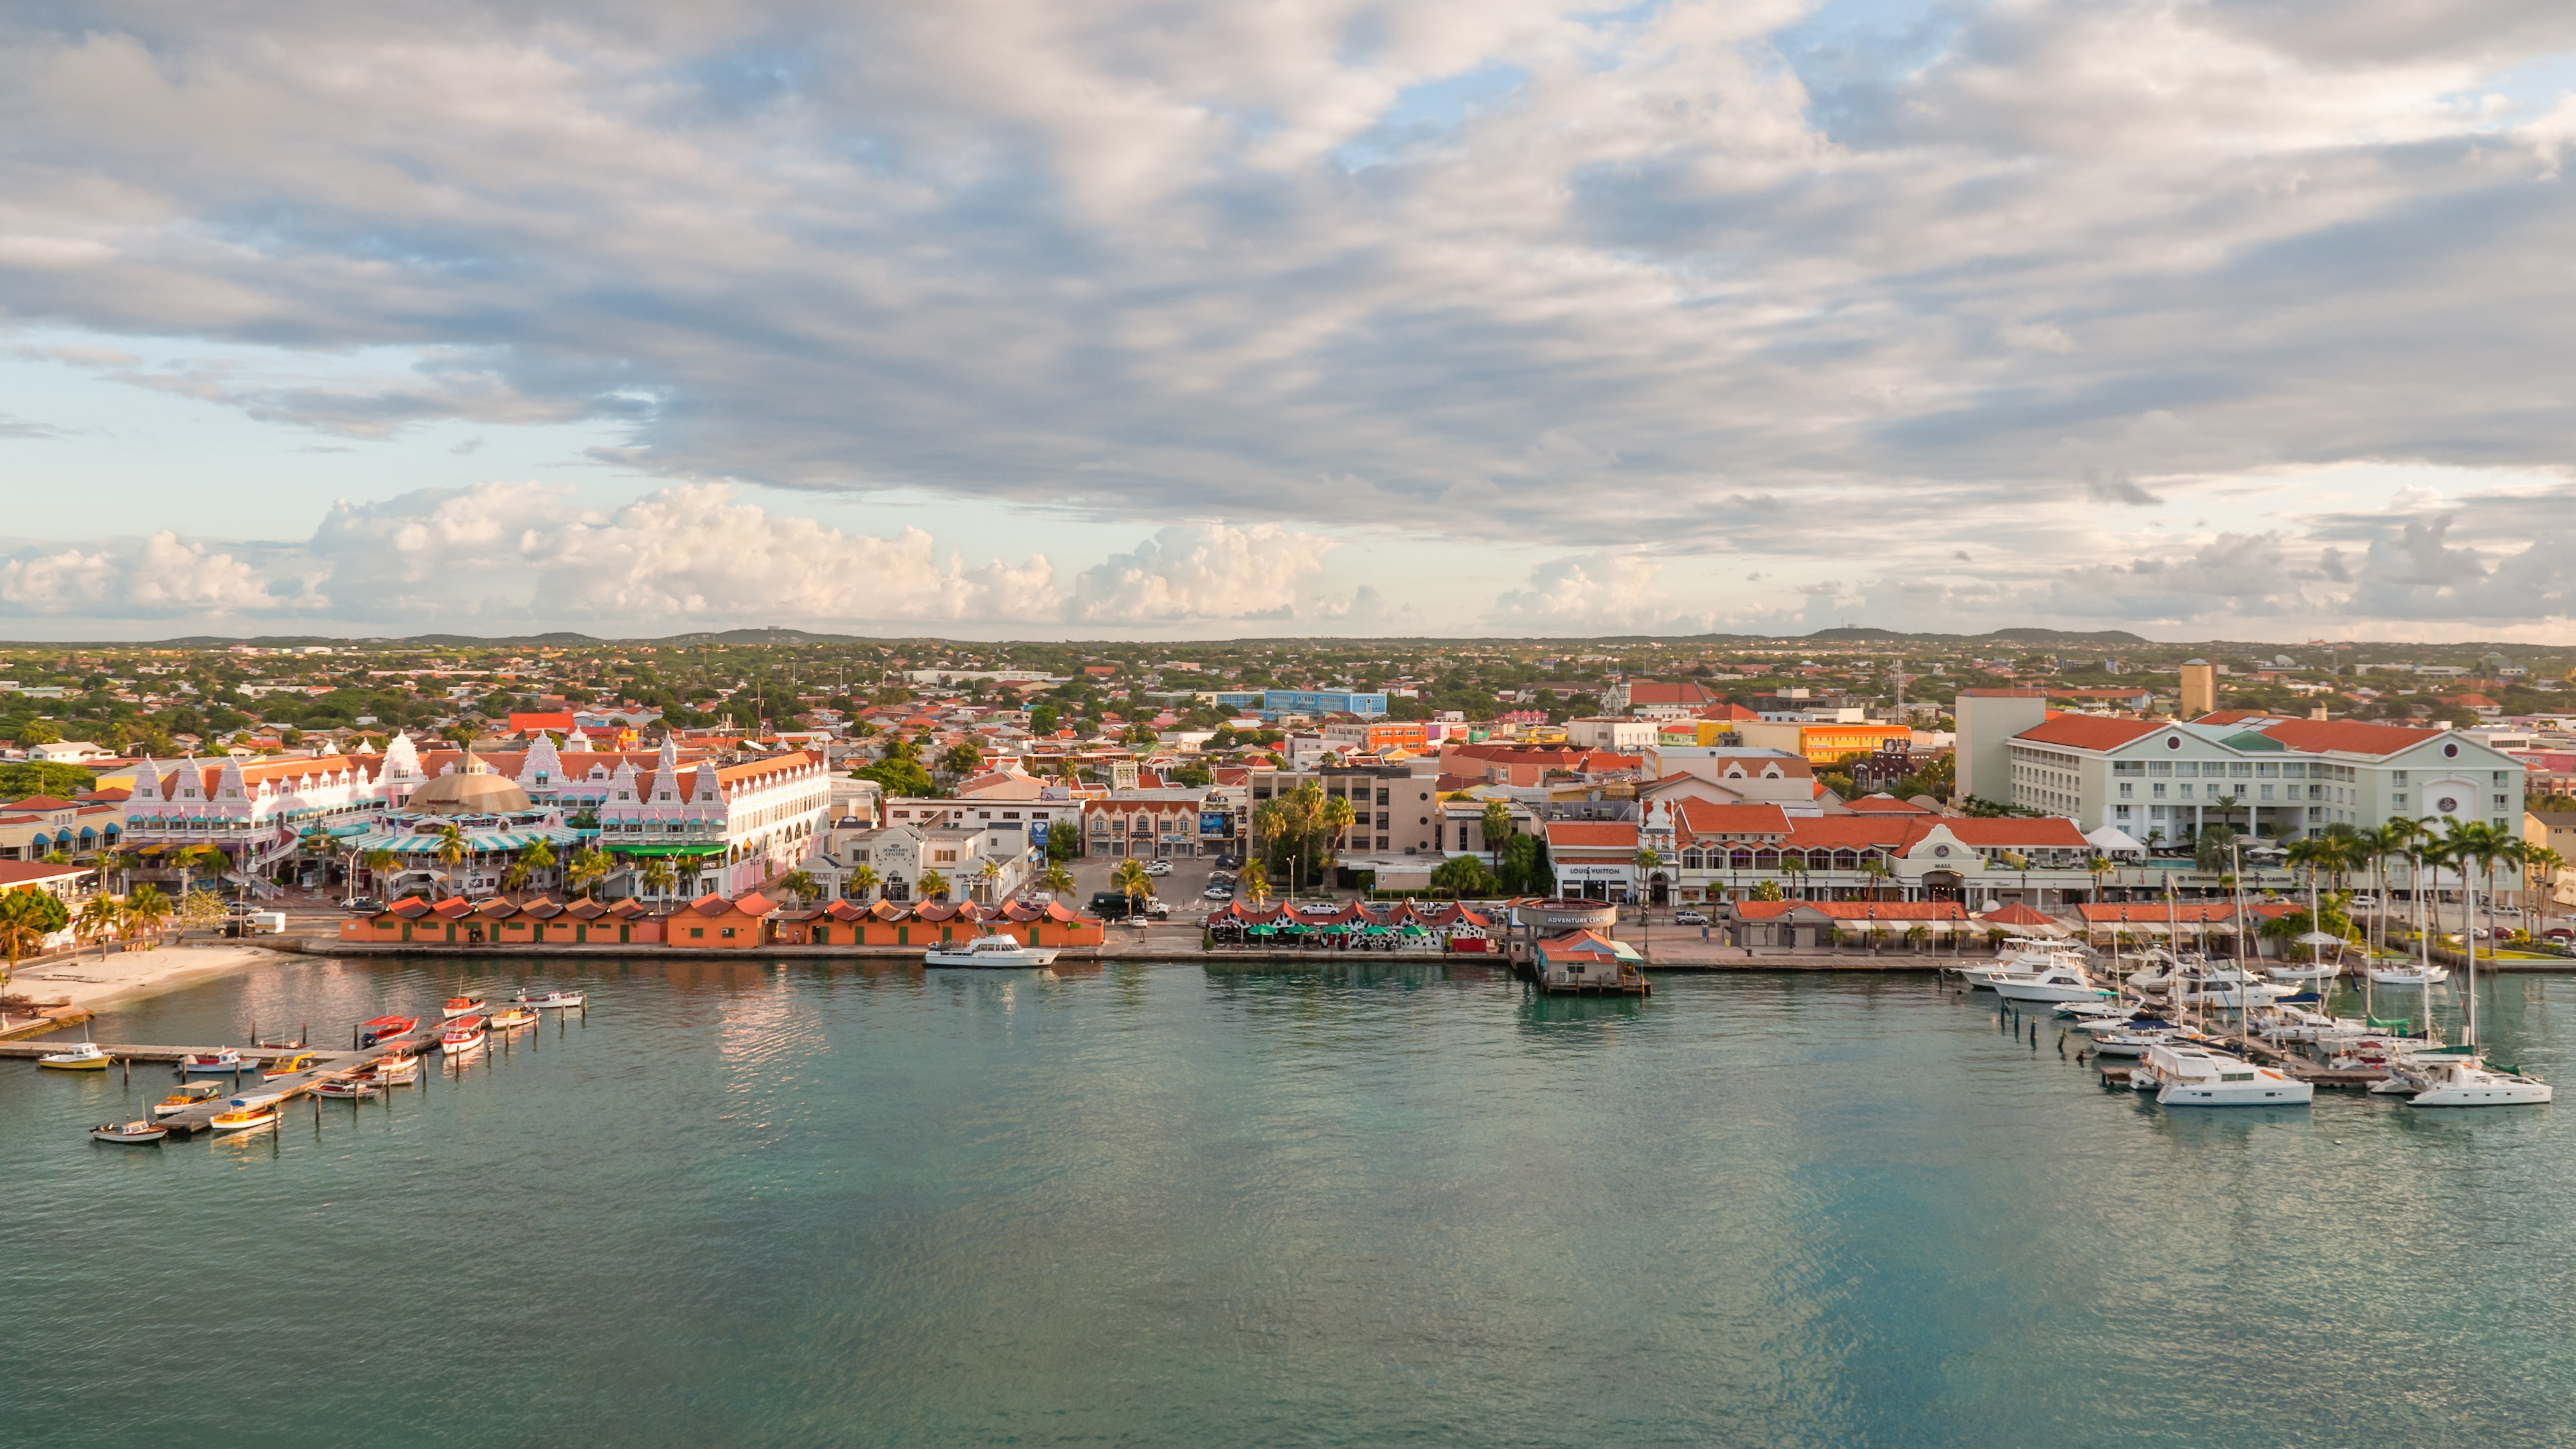 The capital of Aruba is colorful in more ways than one.